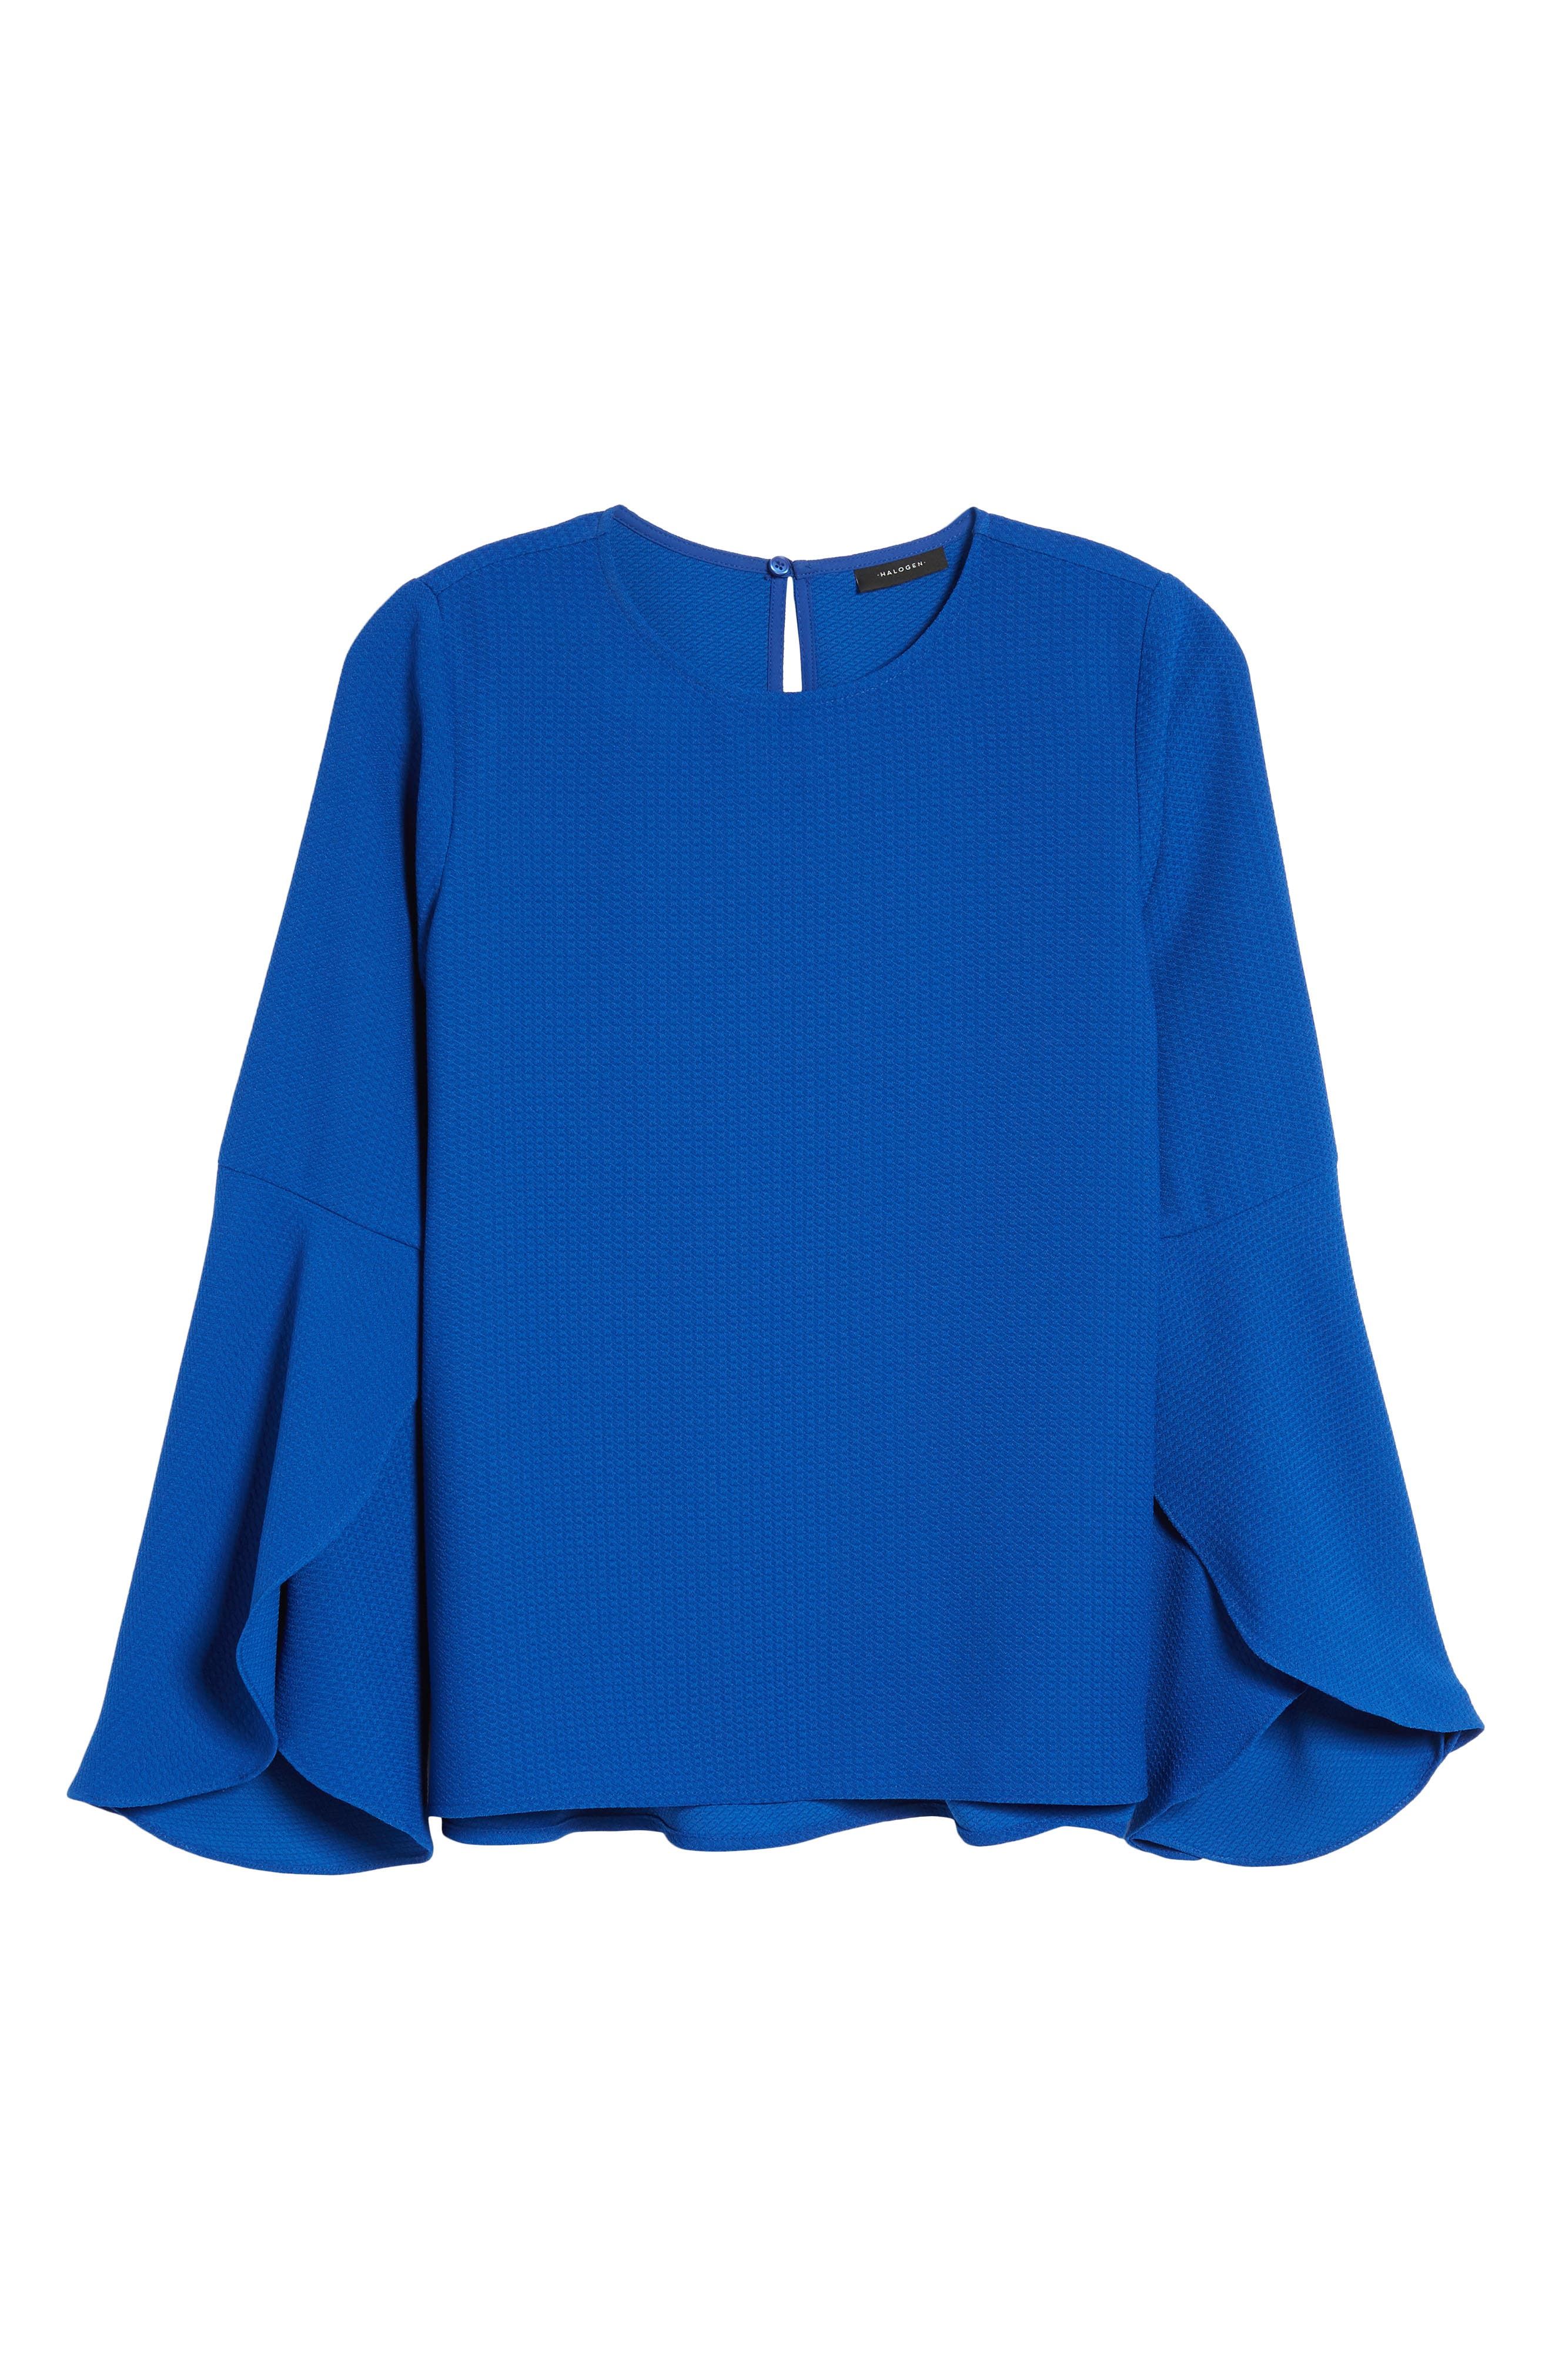 Bell Sleeve Top,                             Alternate thumbnail 6, color,                             420